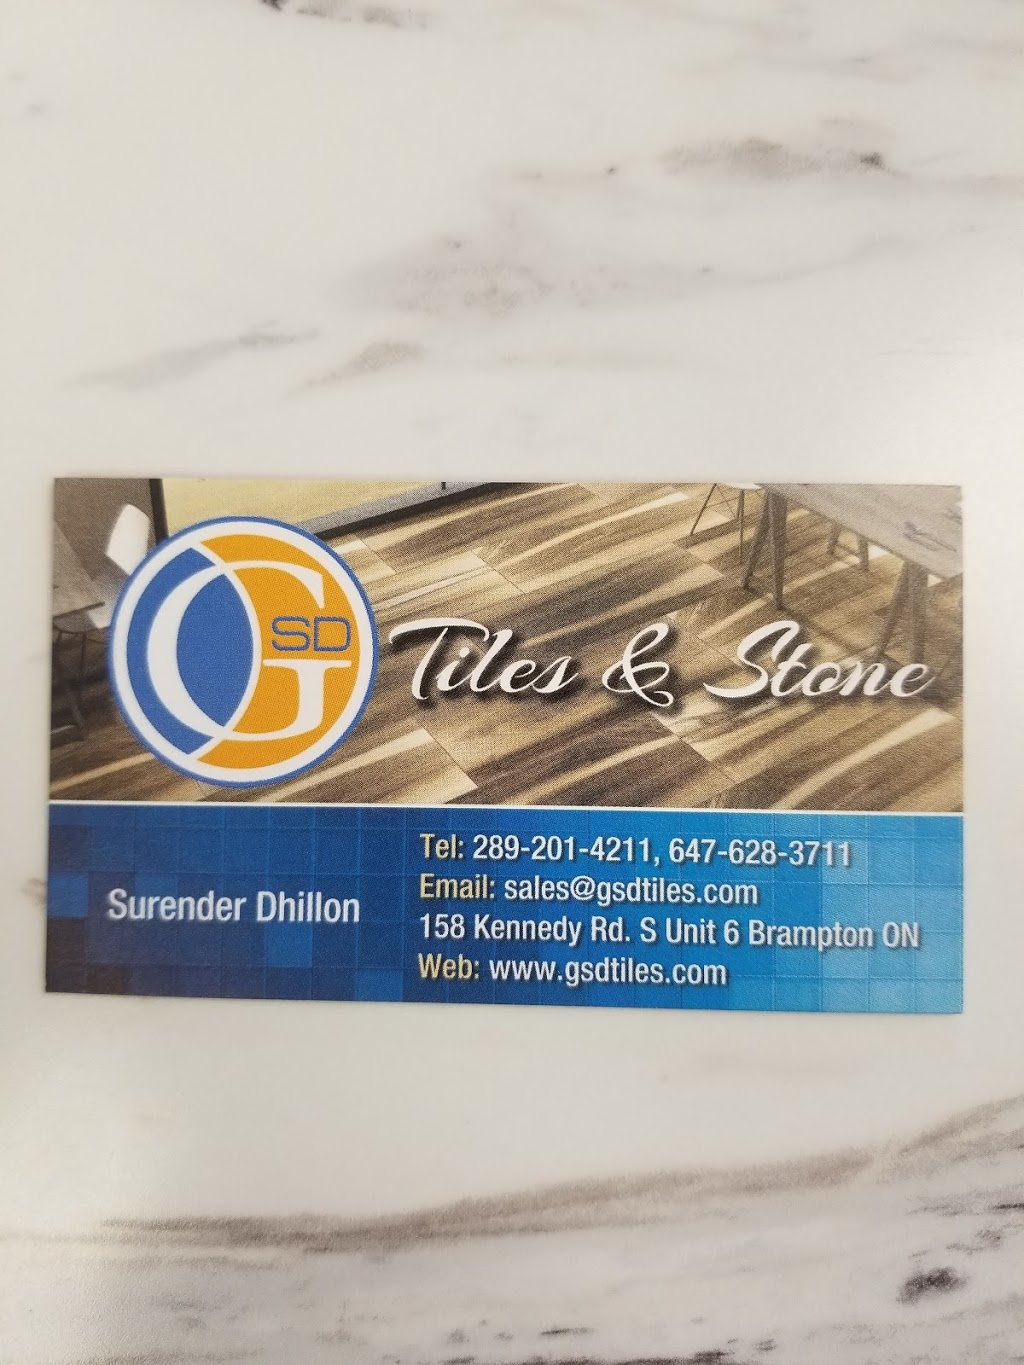 G S D Tiles And Stone   home goods store   158 Kennedy Rd S unit 6, Brampton, ON L6W 3G7, Canada   2892014211 OR +1 289-201-4211